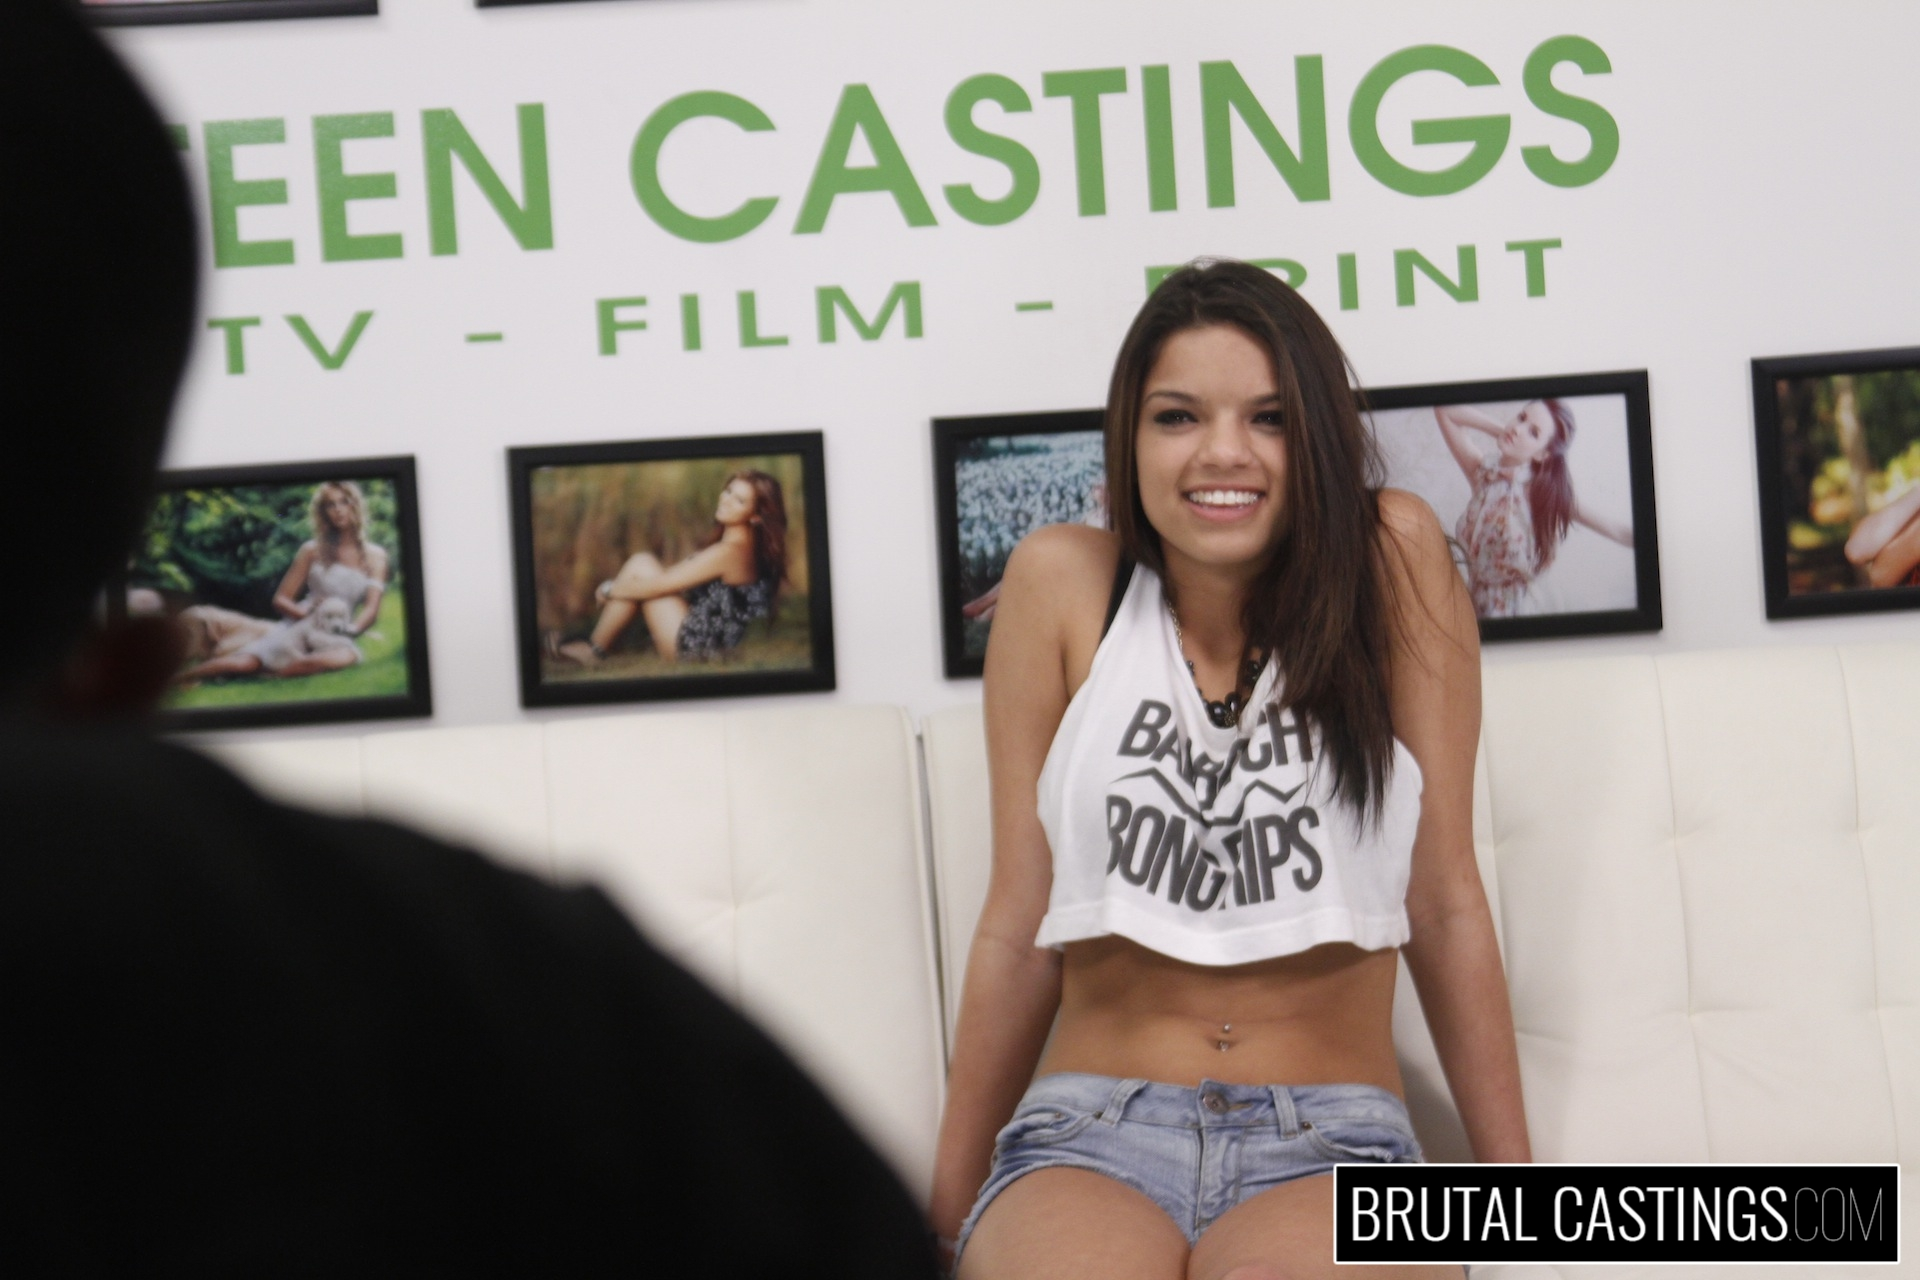 Carrie Brooks, a hot young smiley face with caramel skin, wants to become a model and all the fun perks with Teen Castings! She'll do anything to get what she wants. She'll even endure BDSM, domination, rope bondage, deepthroat bj, fingering, squirting, spanking, slapping and deep penetration rough sex.